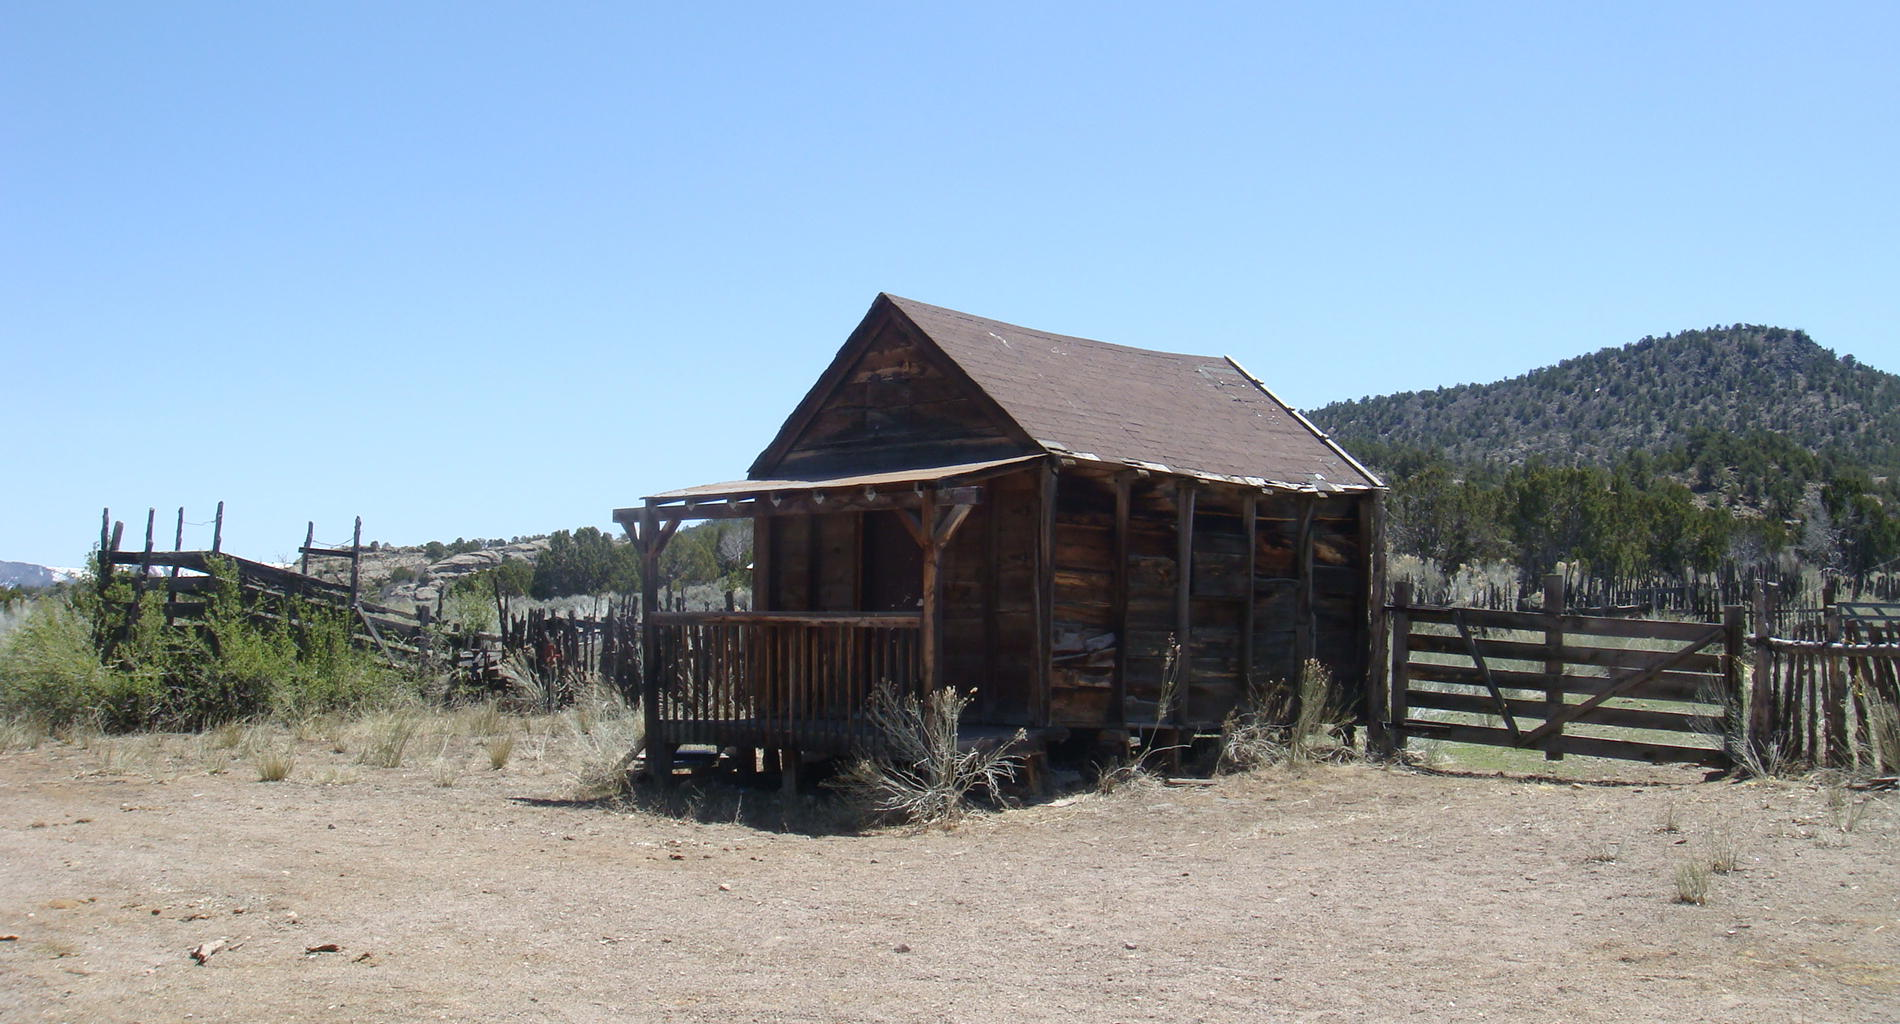 Cabin and Corrals at the Terry Ranch